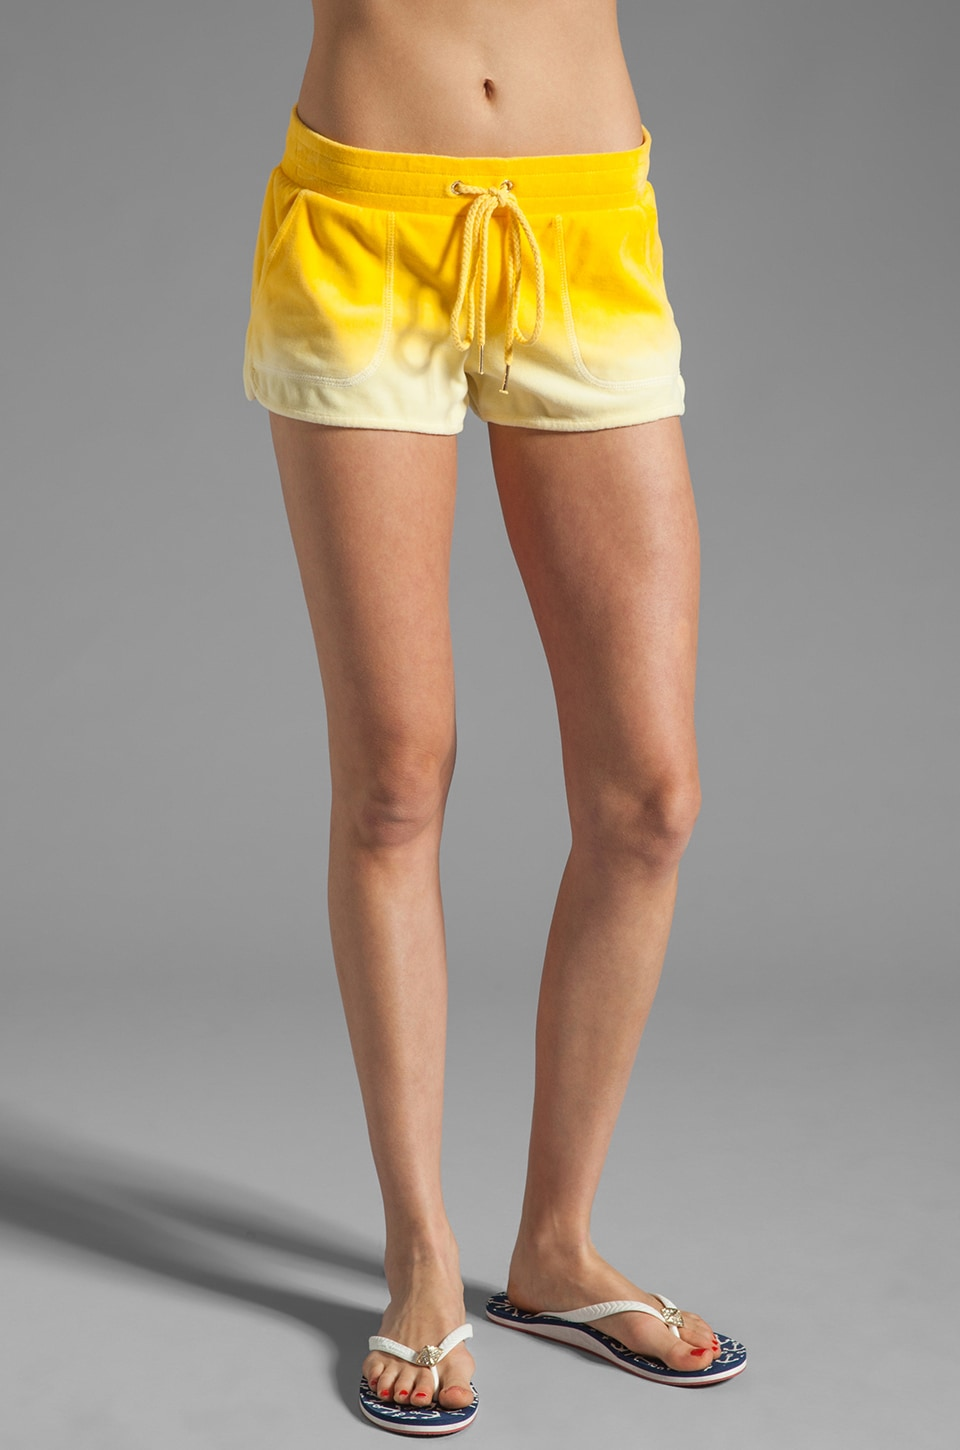 Juicy Couture Ombre Velour Dolphin Short in Pineapple